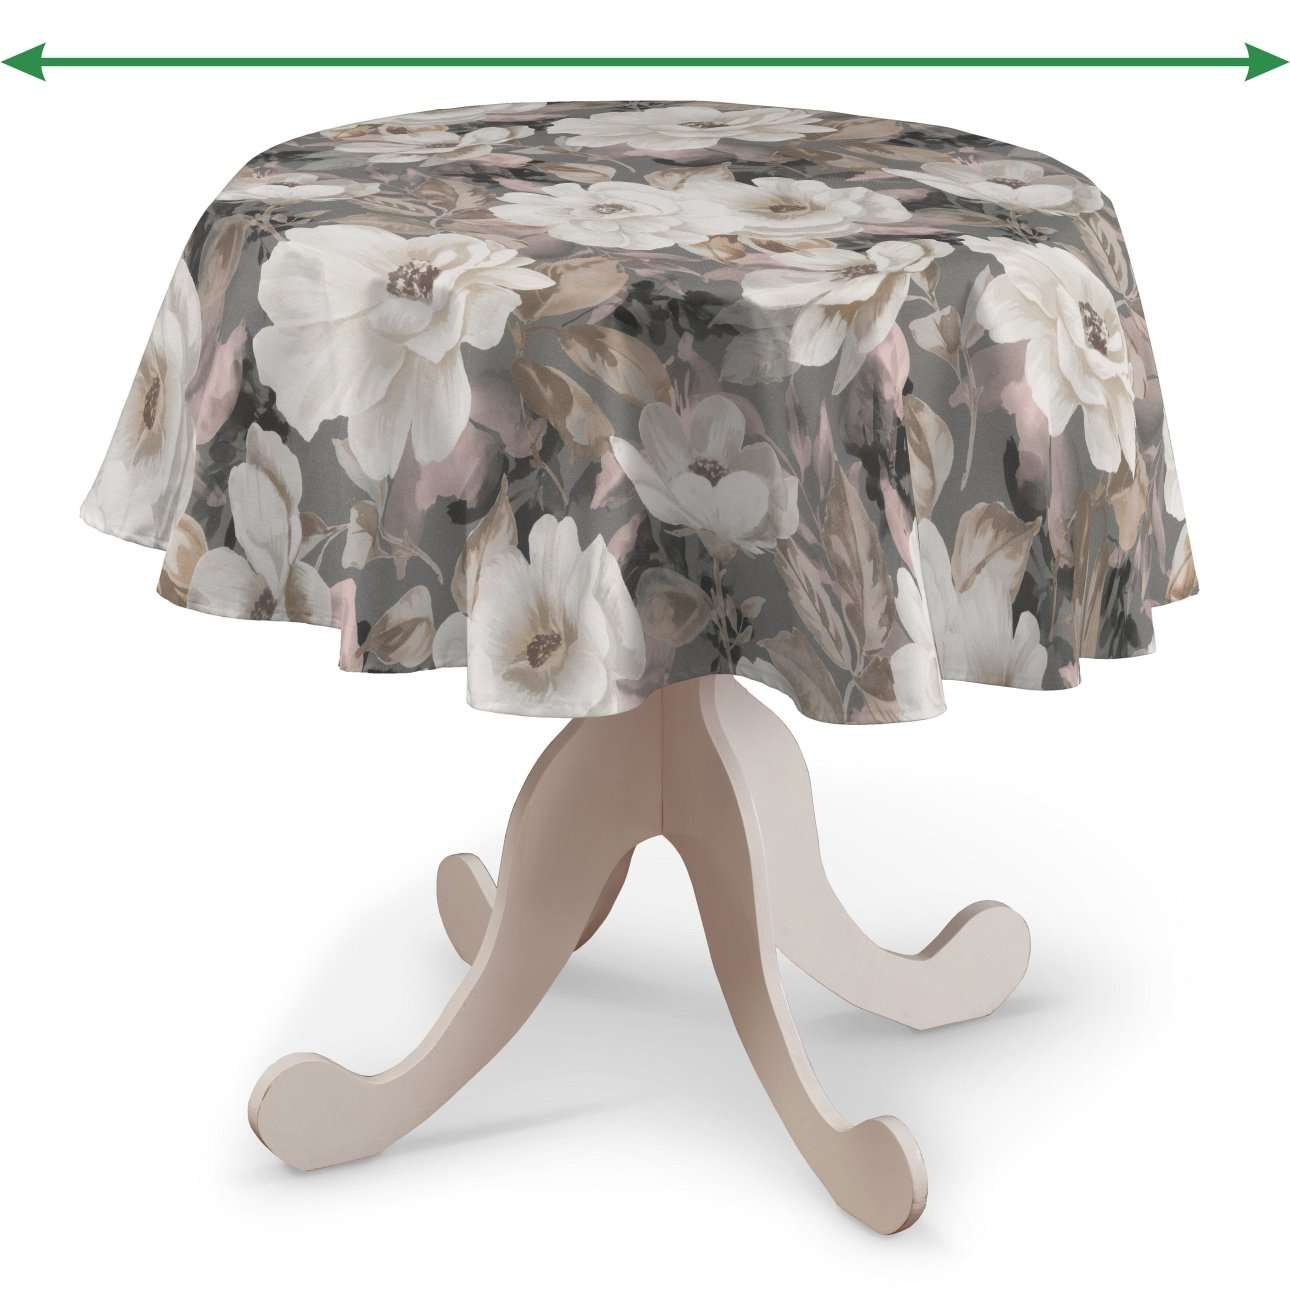 Round tablecloth in collection Gardenia, fabric: 142-13